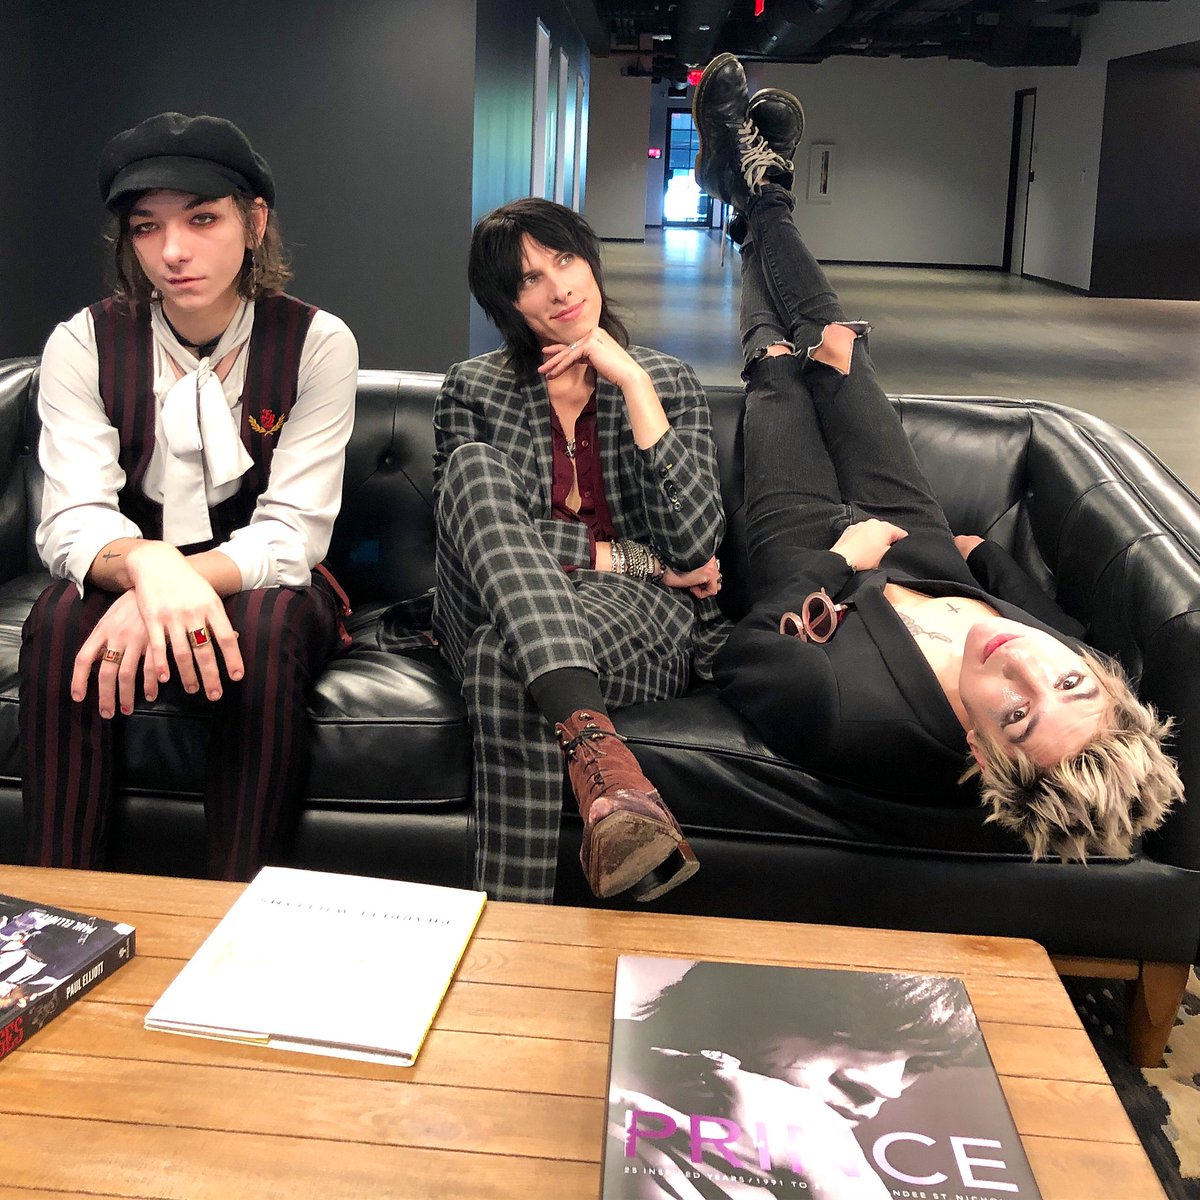 PalayeRoyale photo